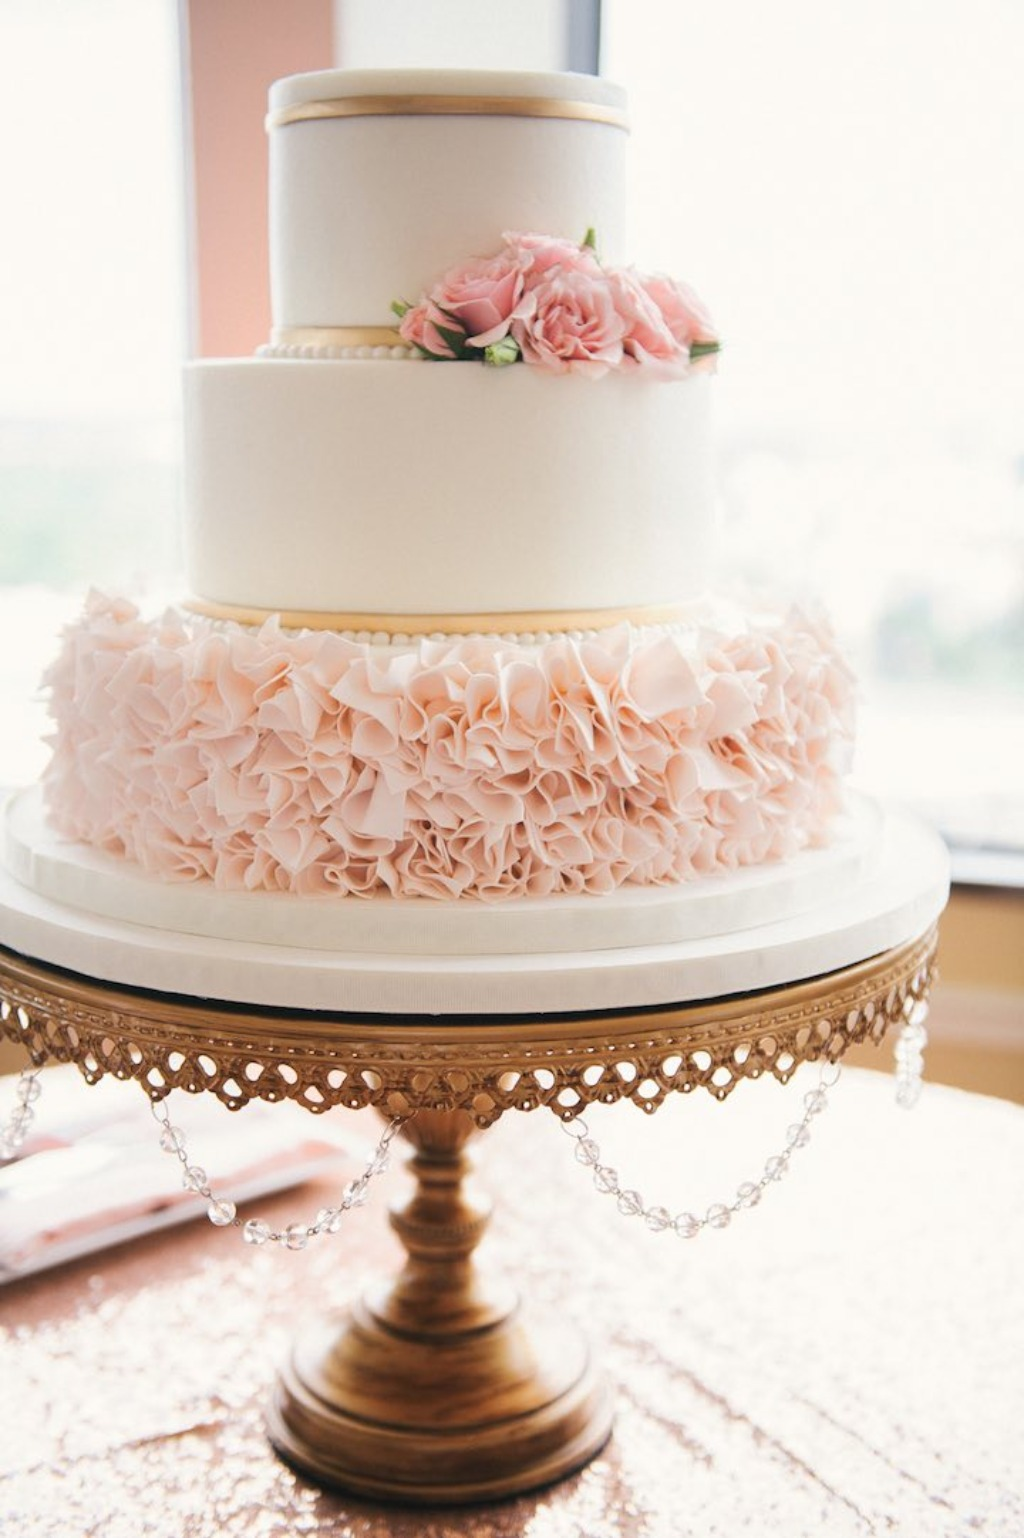 Wedding Cakes & Wedding Cake Stands ...finding the prefect match! {photo:@still55}